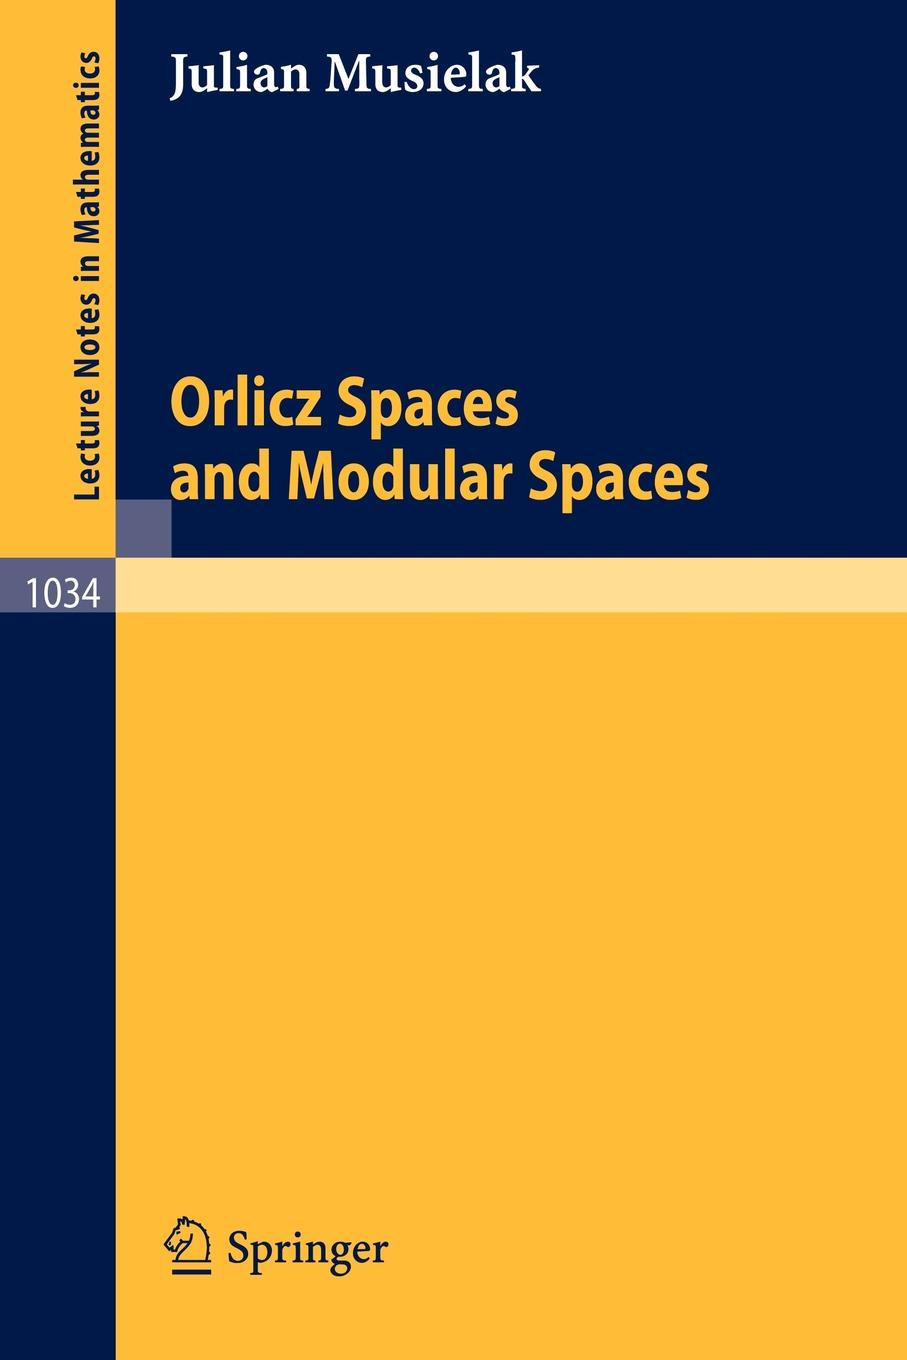 J. Musielak Orlicz Spaces and Modular Spaces clarke m working spaces